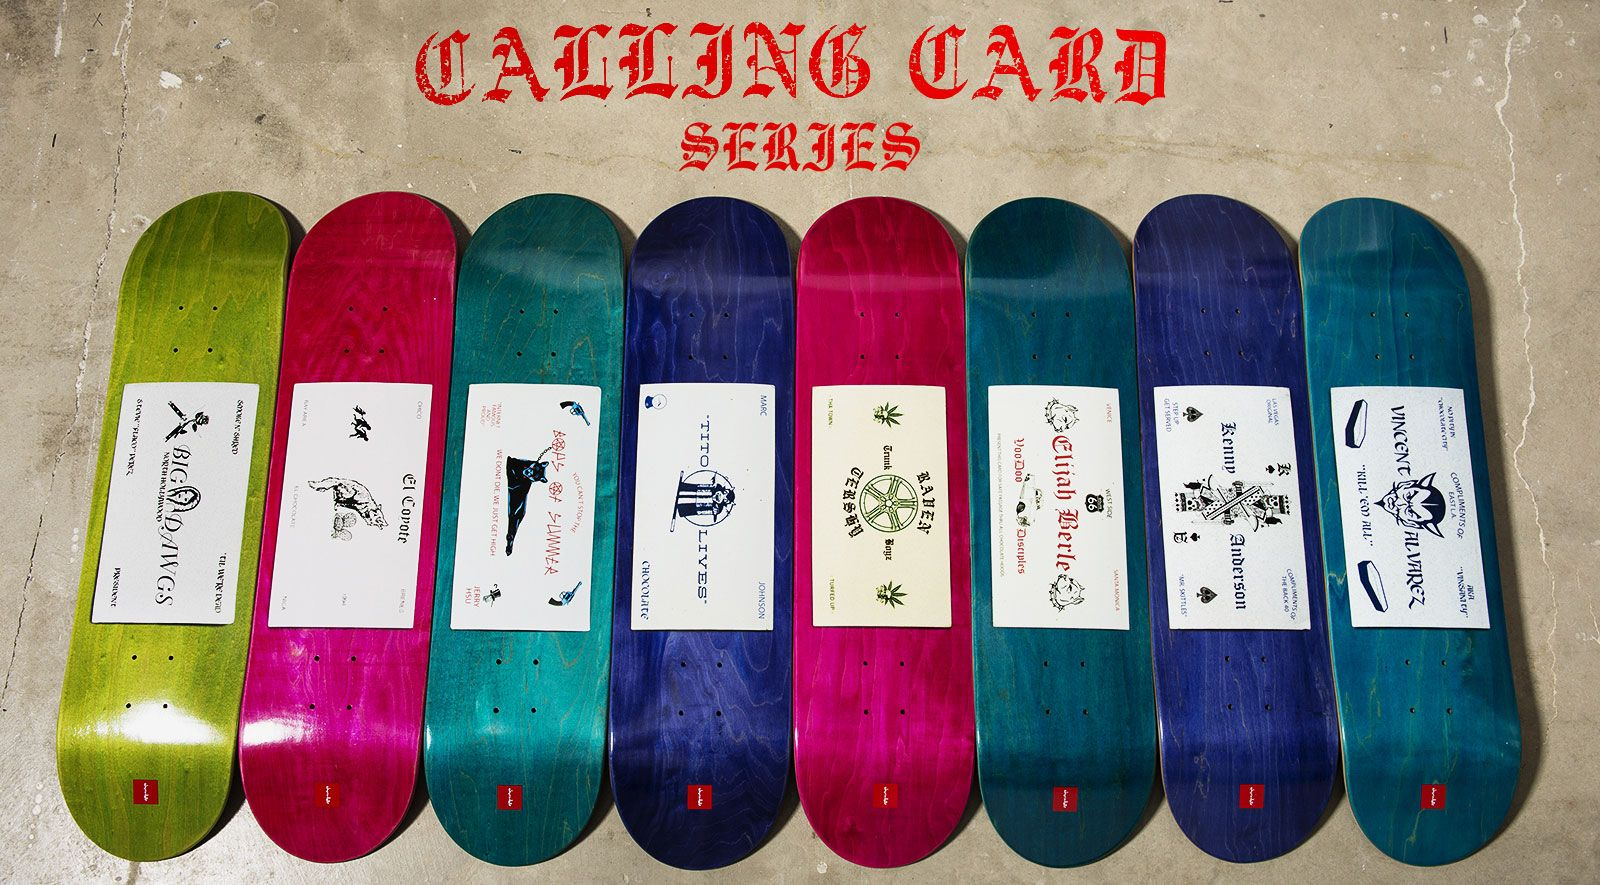 chocolate skateboards calling card series - Google Search | Skate ...